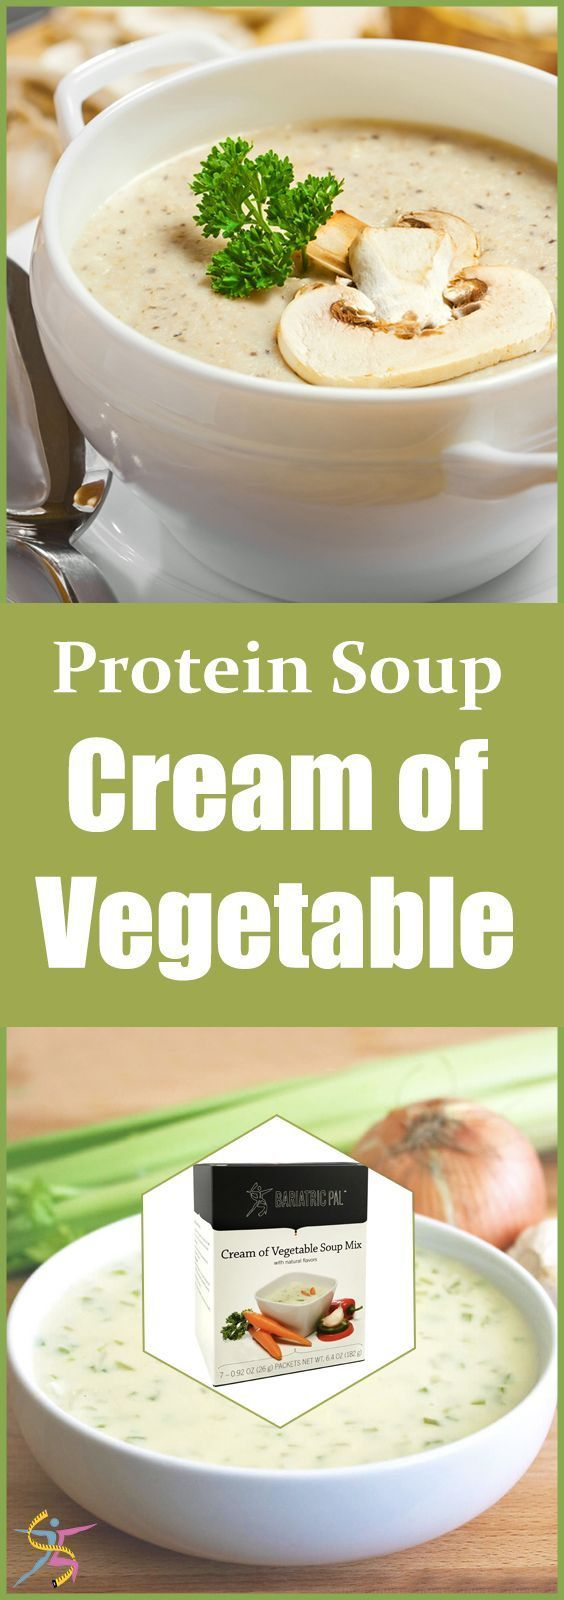 BariatricPal Protein Soup - Cream of Vegetable BariatricPal Protein Soup is your mealtime solution. Just add water and enjoy your instant high-protein soup. BariatricPal Protein Soup � Cream of Vegetable is a creamy comfort food without the extra fat and calories. Each bowl has only 90 calories and almost no fat! It has real vegetables like onions, bell peppers, leeks, and carrots, and 15 grams of protein. It can make you feel better pre-op and post-op while giving you the protein you need…